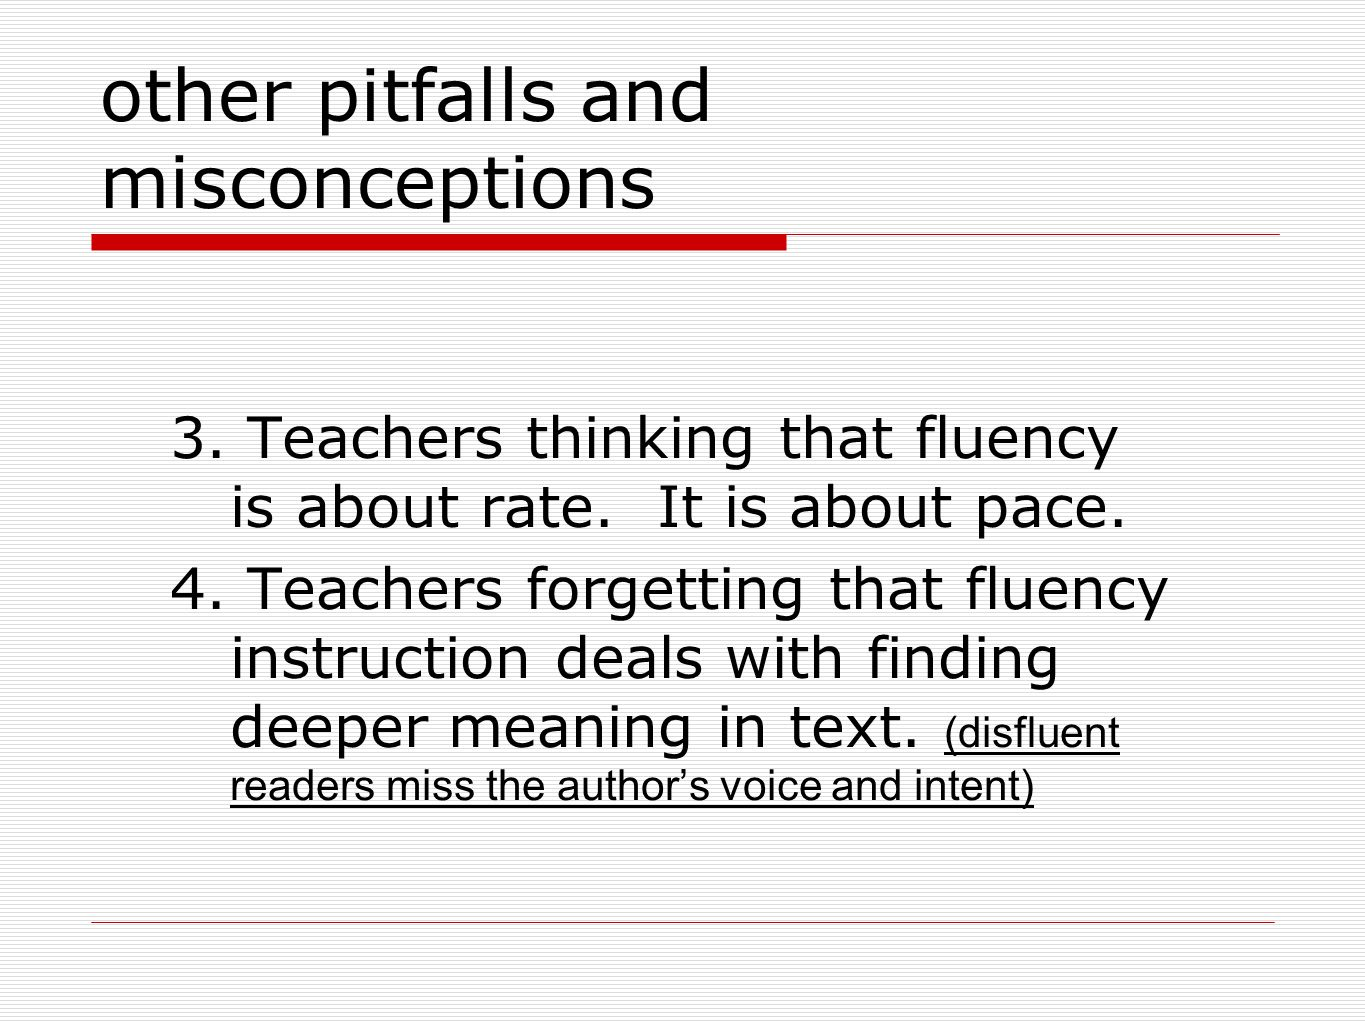 3. Teachers thinking that fluency is about rate. It is about pace.